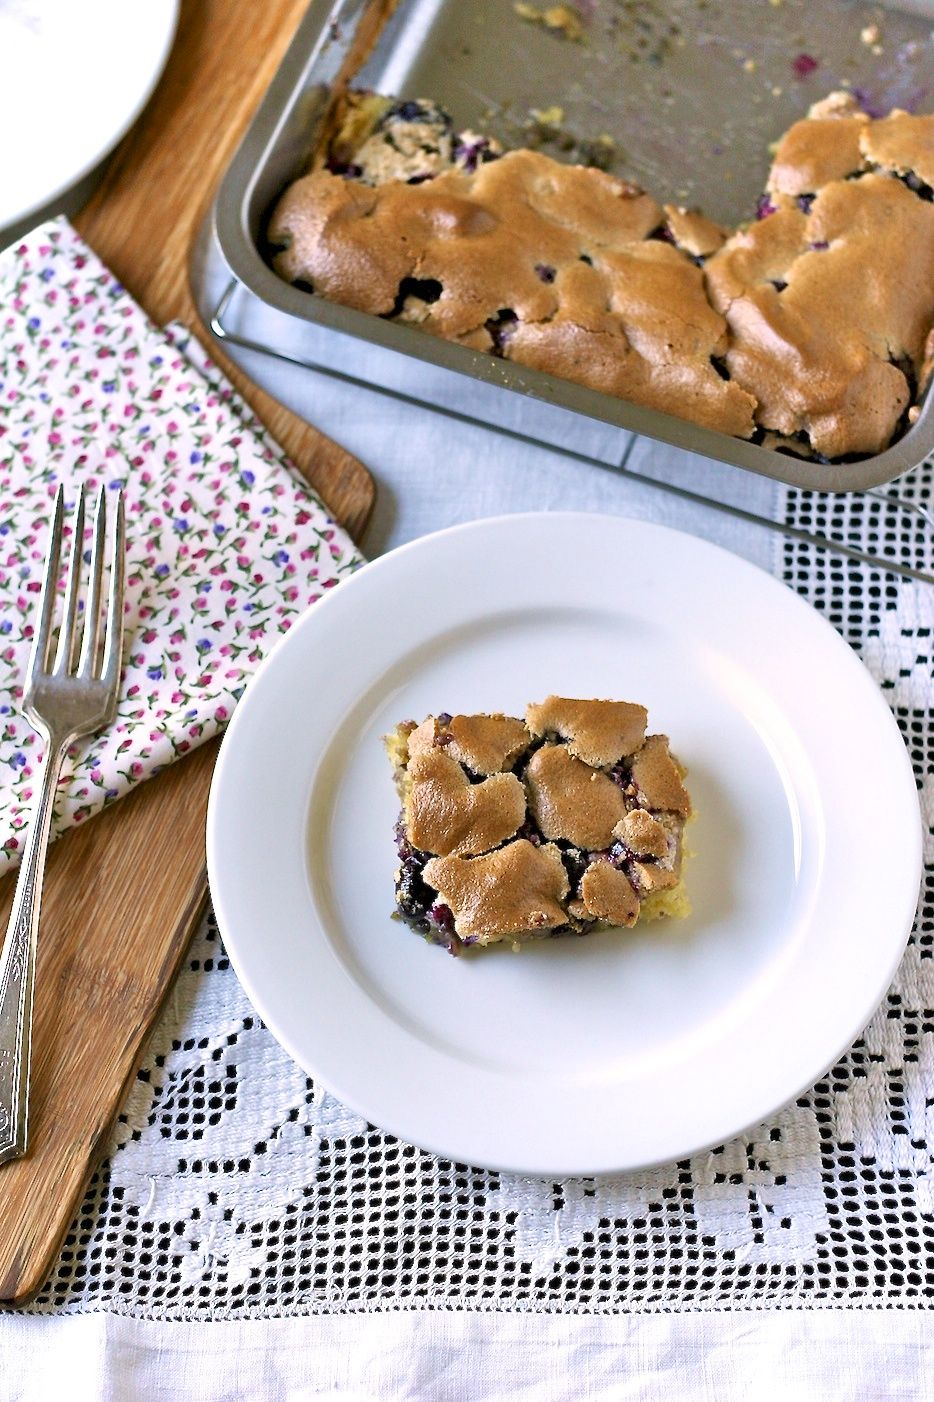 blueberry squares. My grandmother used to make! Delicious:)